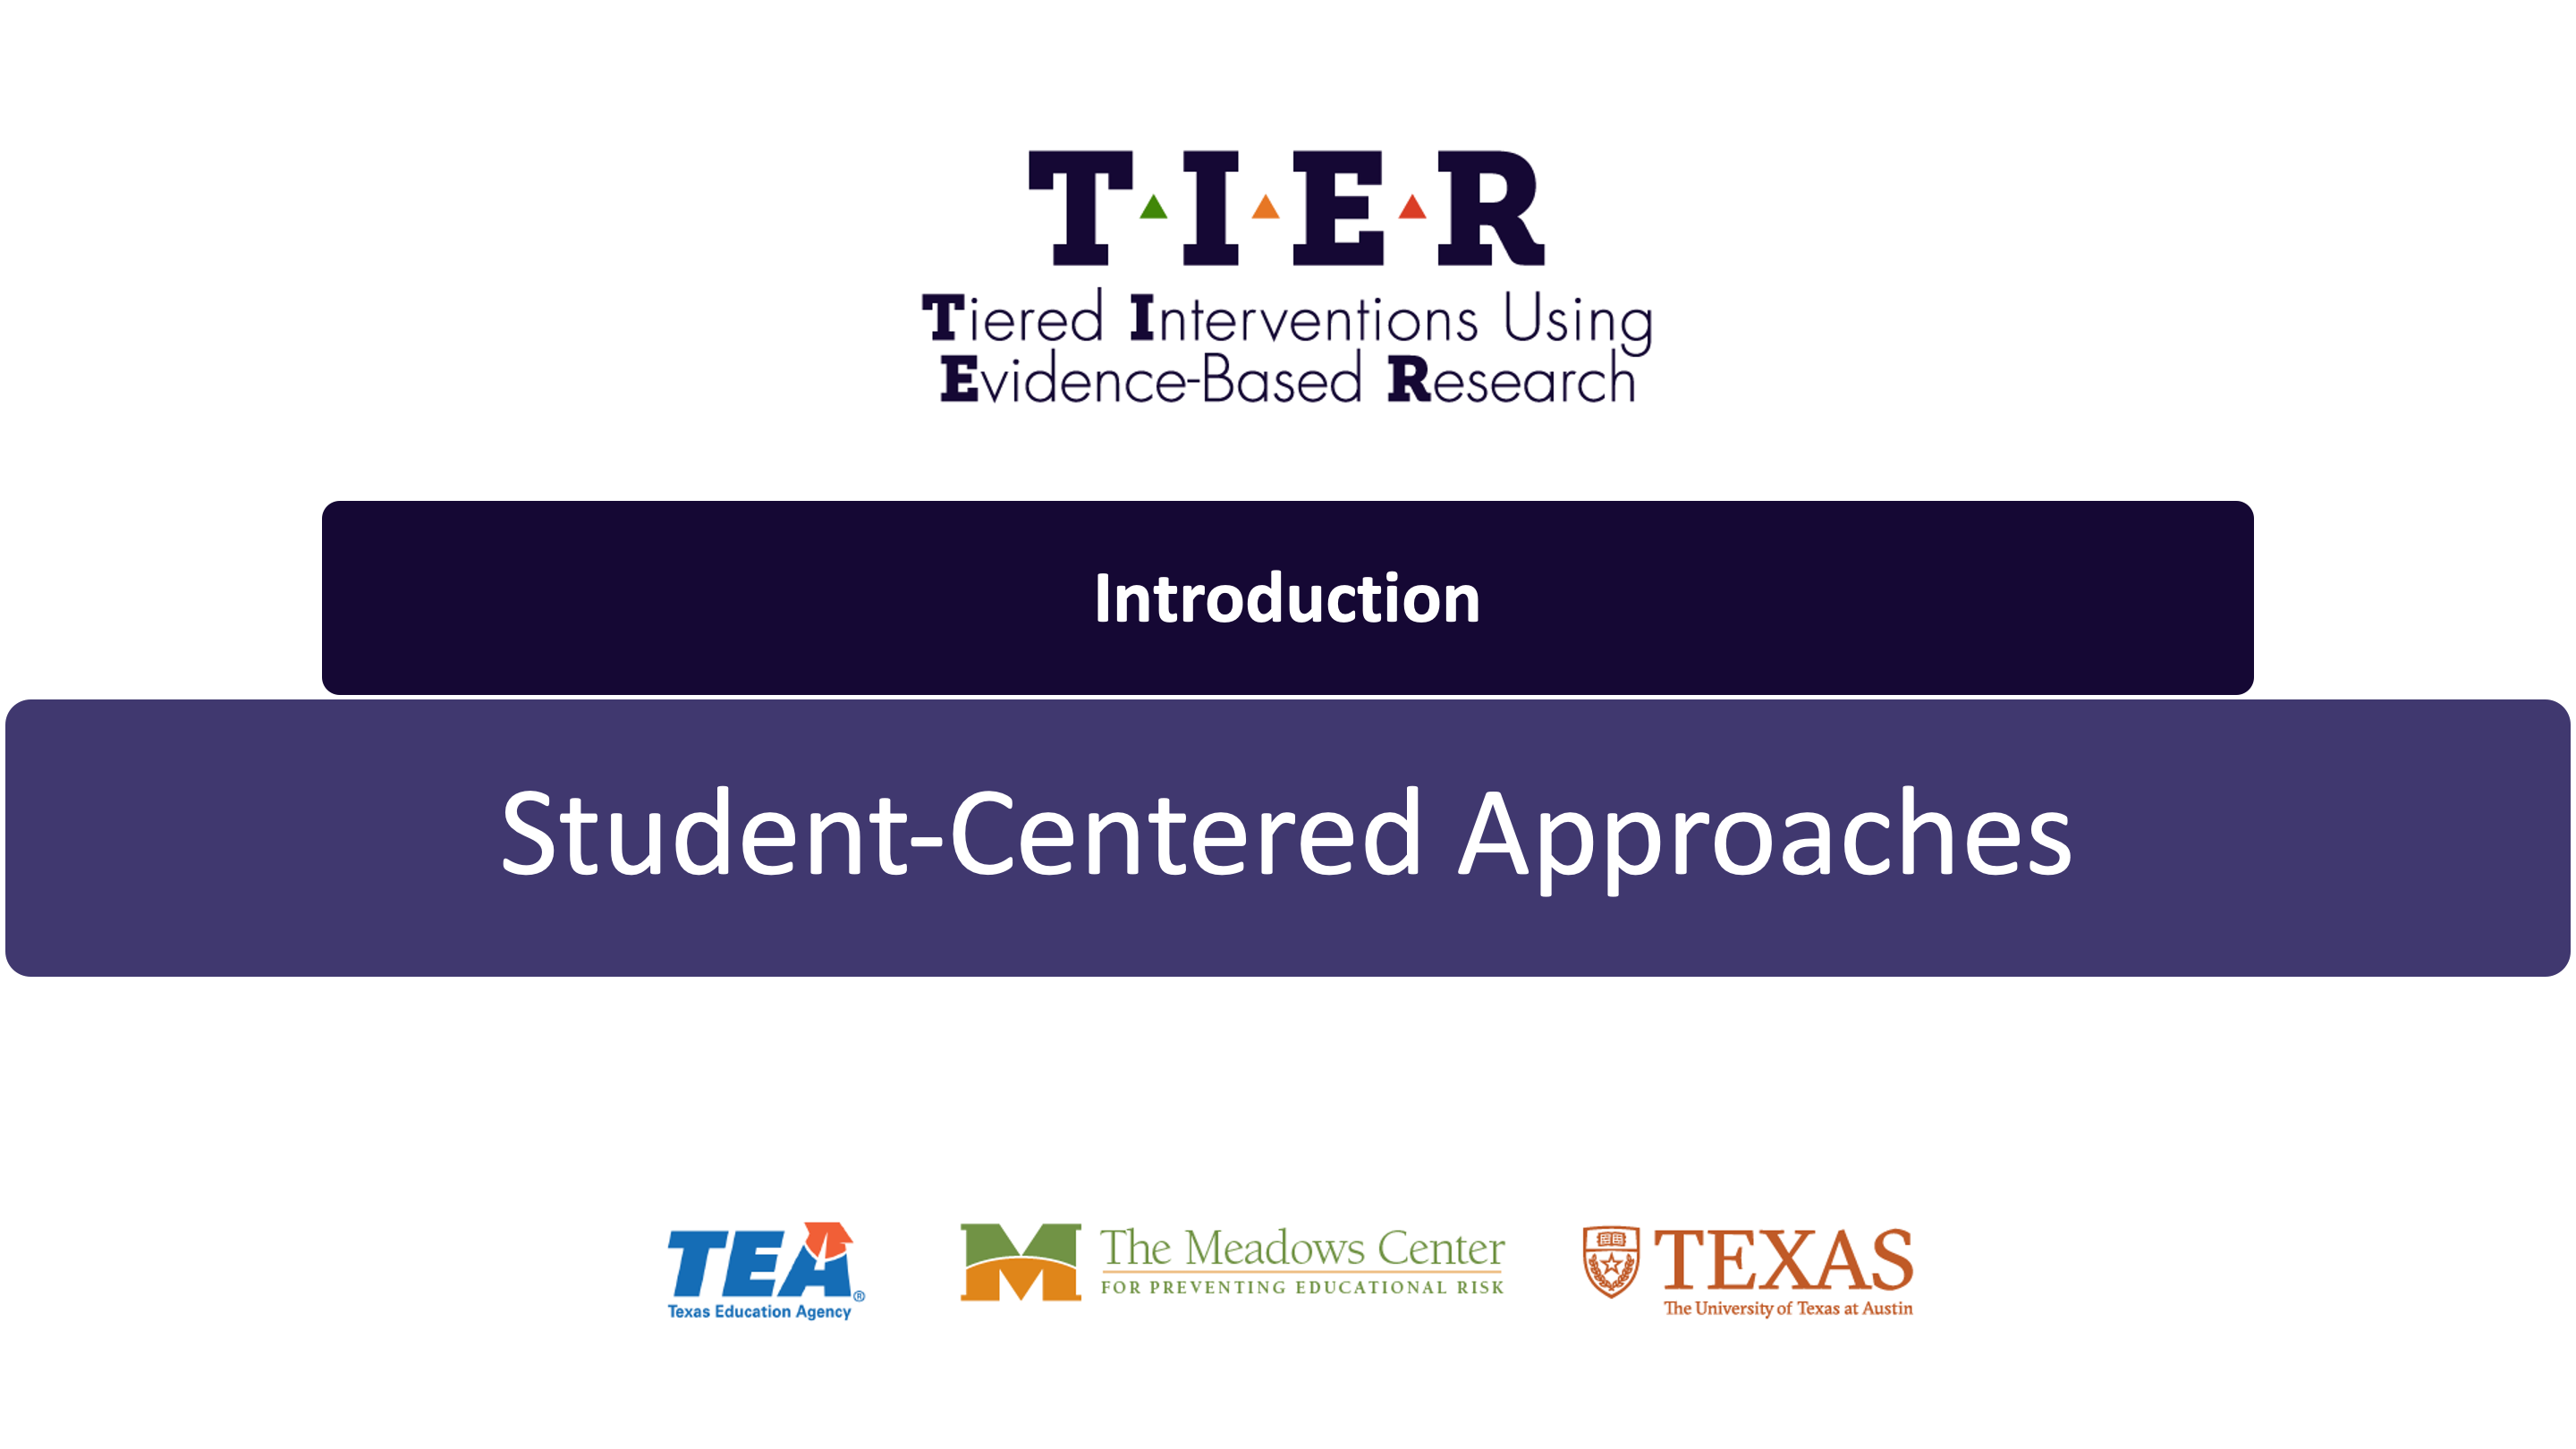 Student-Centered Approaches